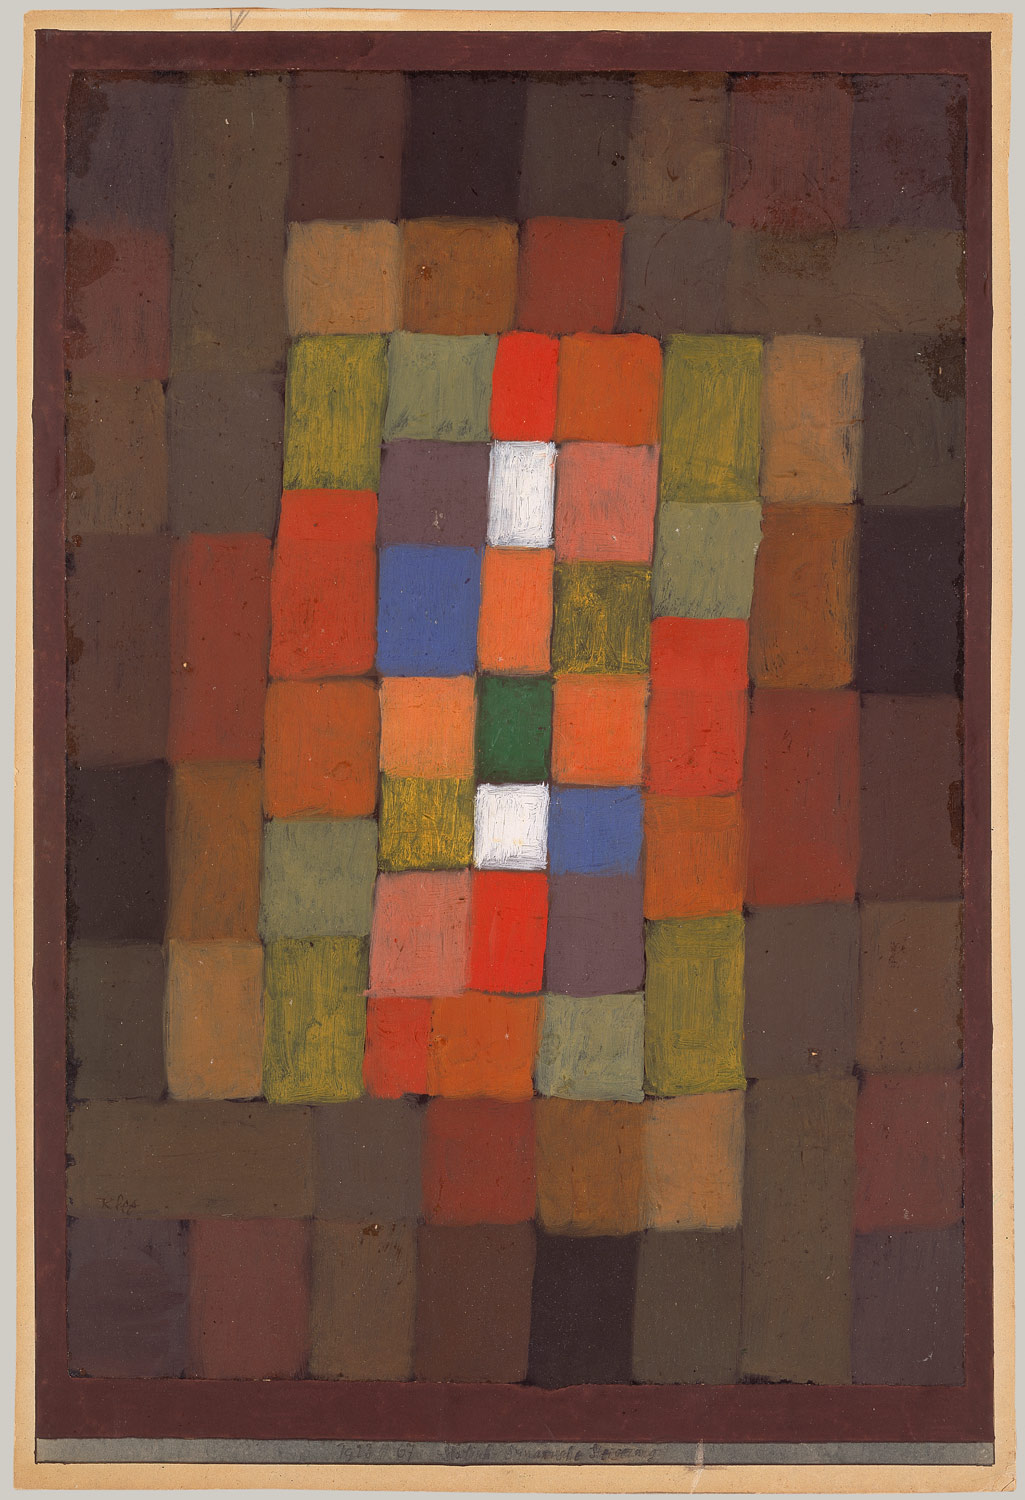 paul klee essay heilbrunn timeline of art history static dynamic gradation